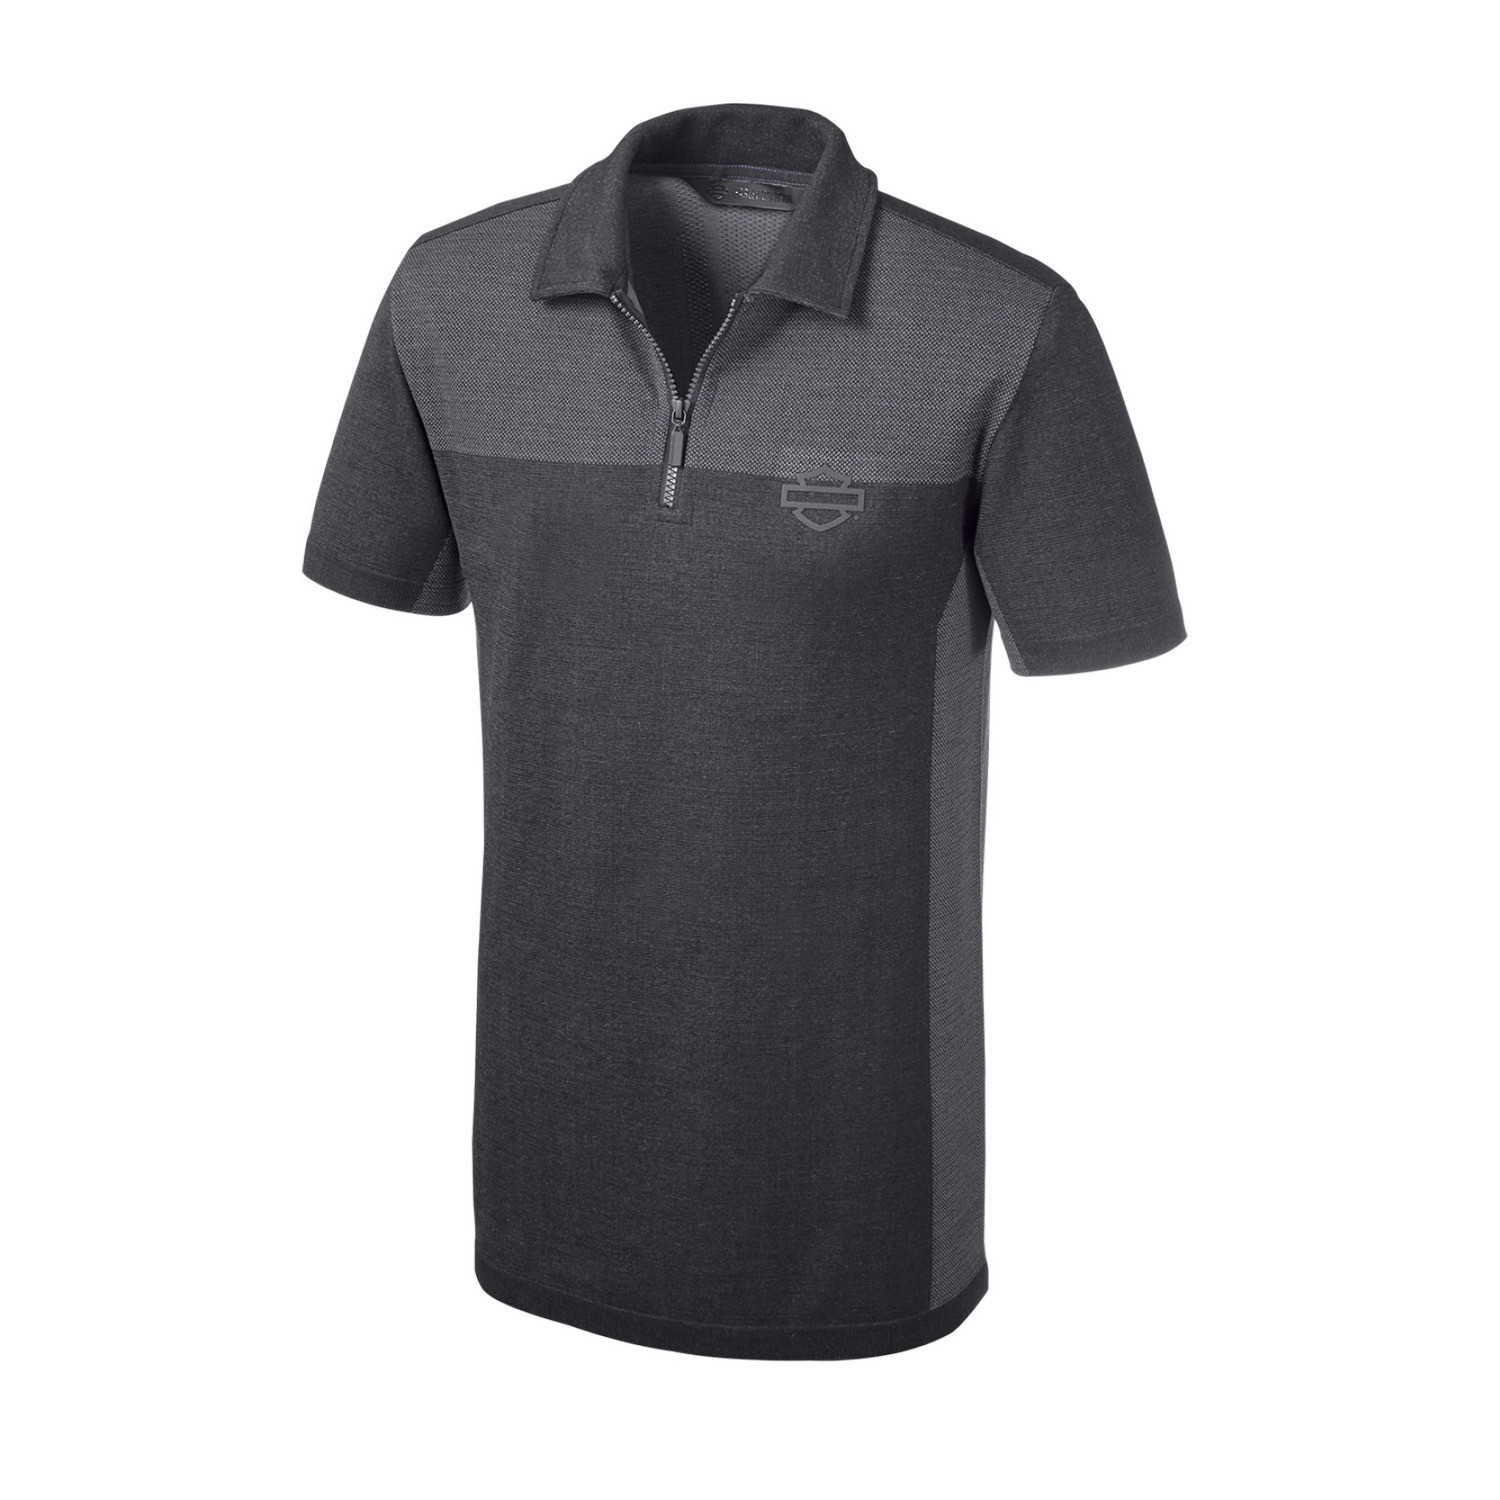 H-D Moto® Seamless Knit Slim Fit Polo Men